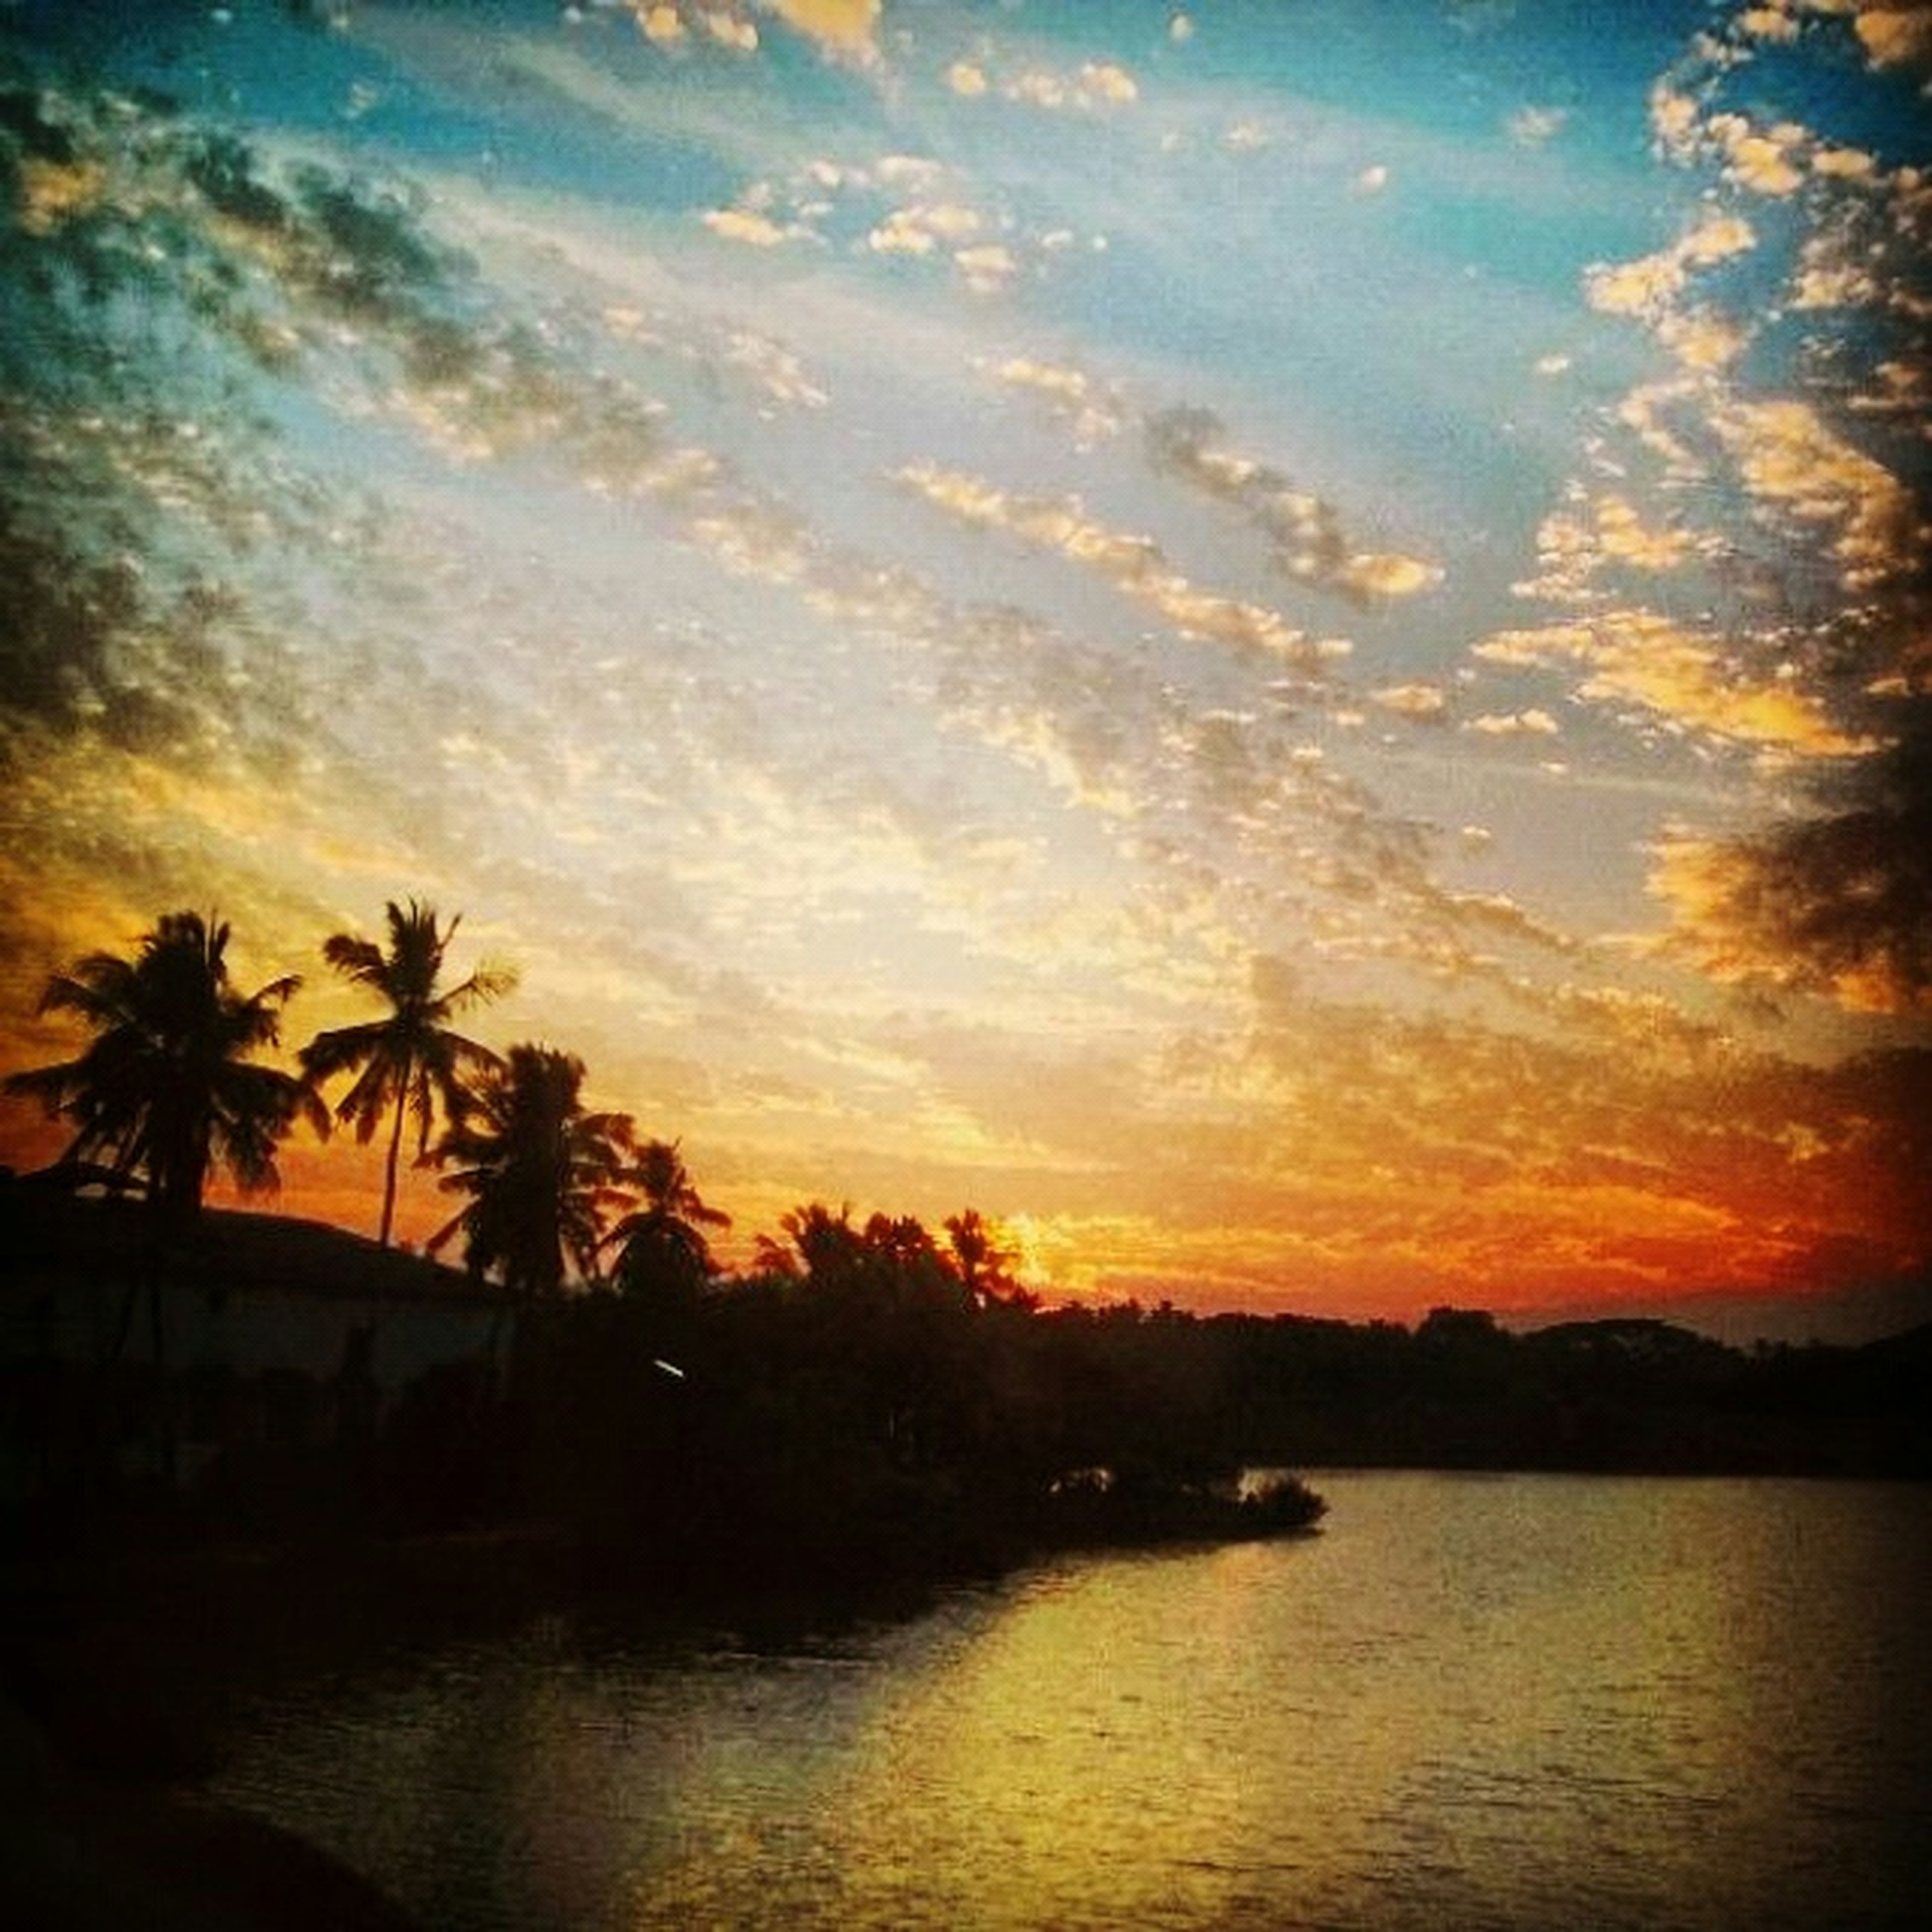 sunset, water, tree, scenics, sky, tranquil scene, silhouette, beauty in nature, tranquility, orange color, reflection, nature, waterfront, idyllic, cloud - sky, palm tree, lake, river, cloud, dramatic sky